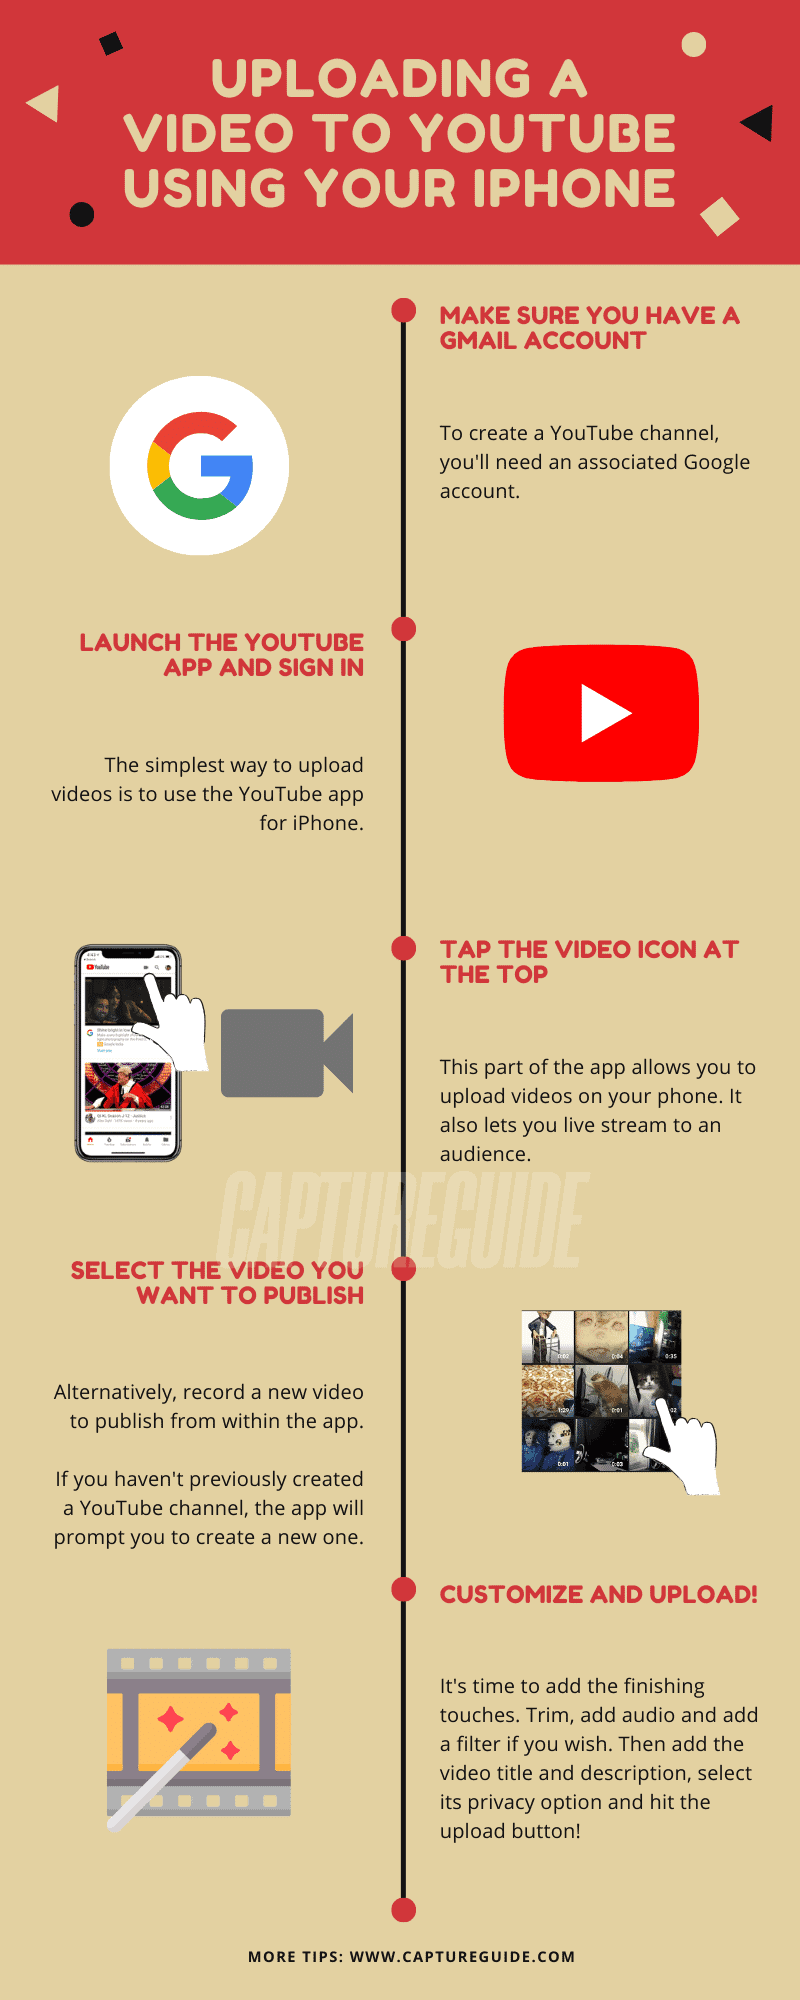 How To Upload A Video To YouTube From iPhone (Simplest Method) - Capture  Guide